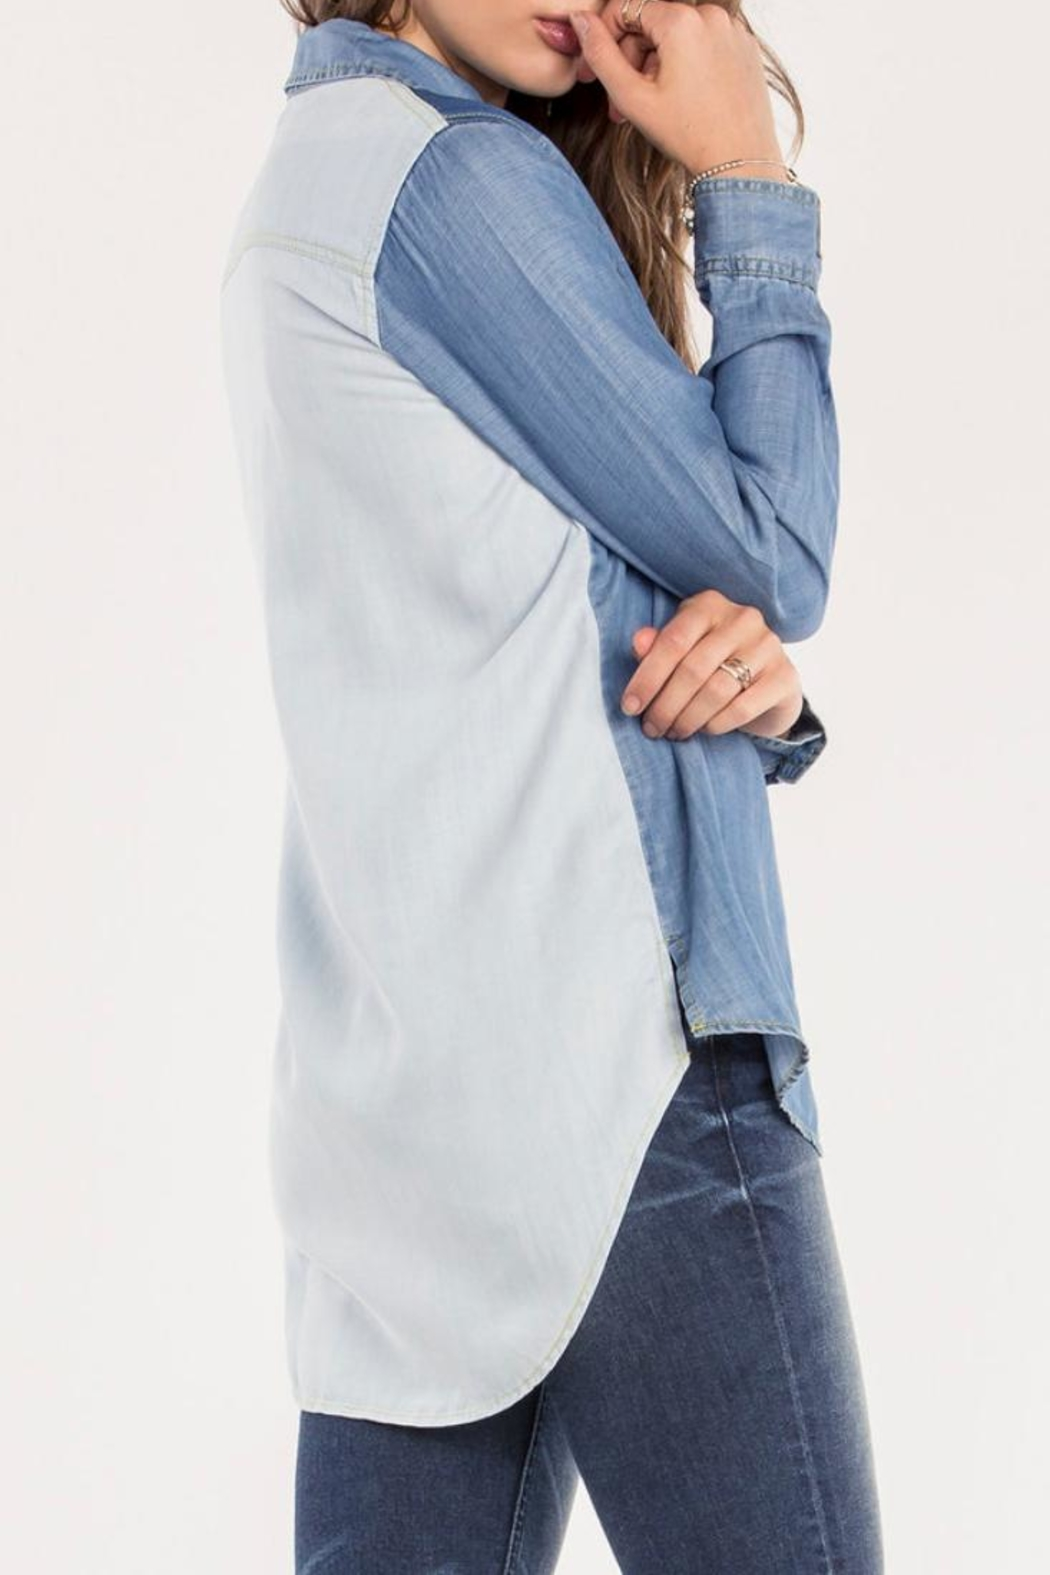 Miss Me Two Tone Chambray Top - Side Cropped Image